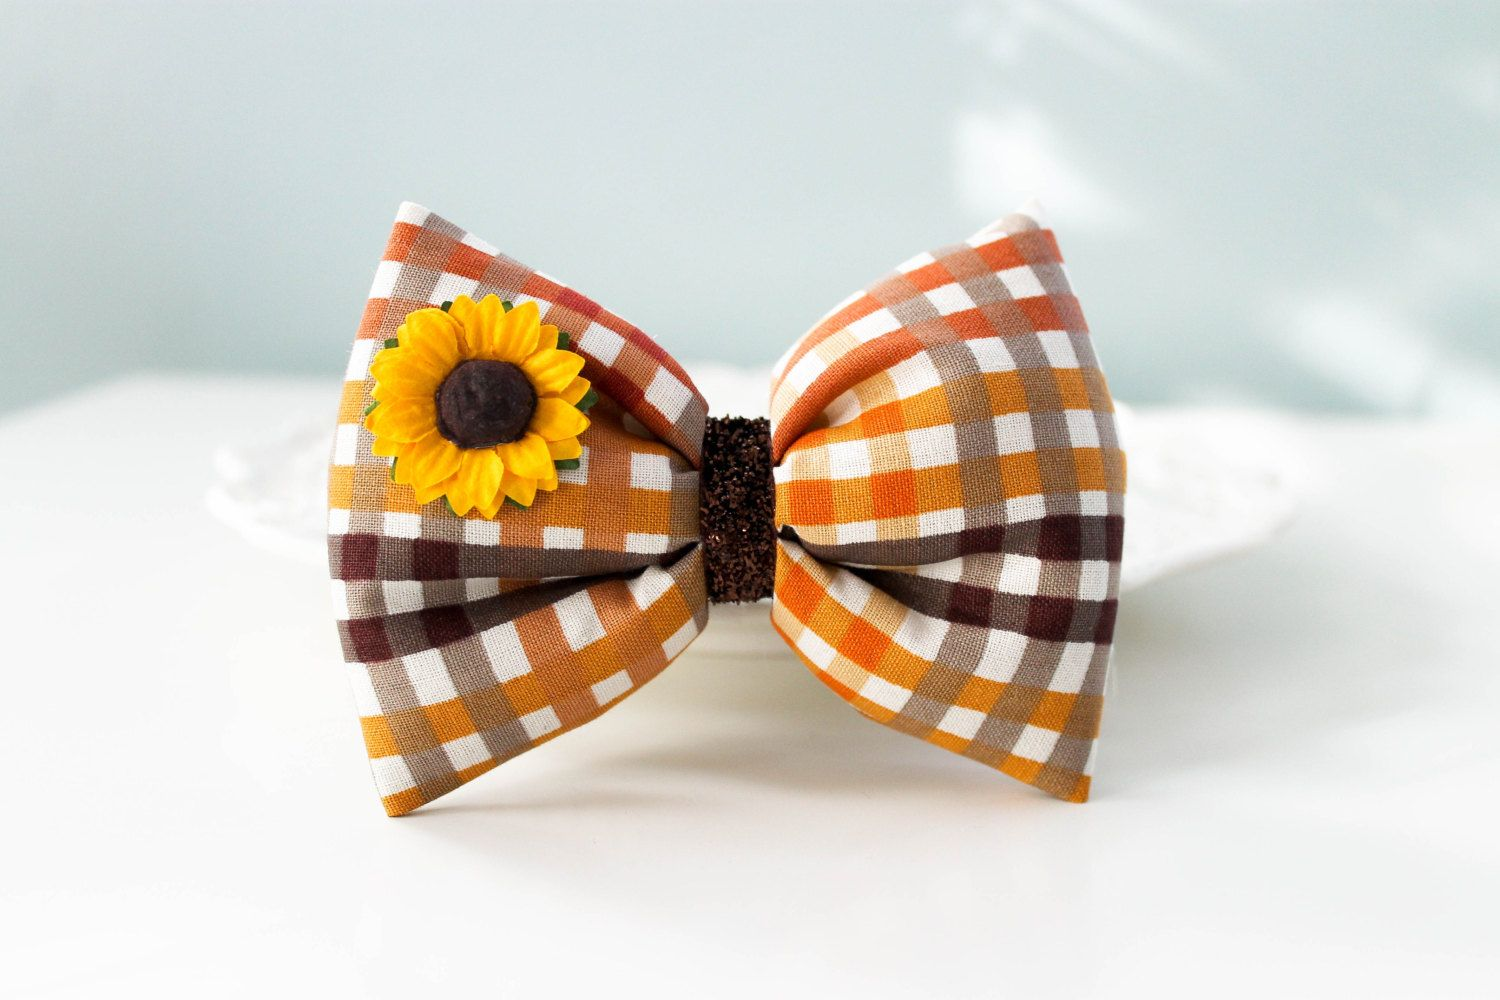 Thanksgiving Hair Bow, Harvest Bow, Puffy Hair Bow, Holiday Hair Bow, Sunflower Hair Clip, Autumn Fall Puffy Bow, Sunflower Hair Bow by jentabows on Etsy